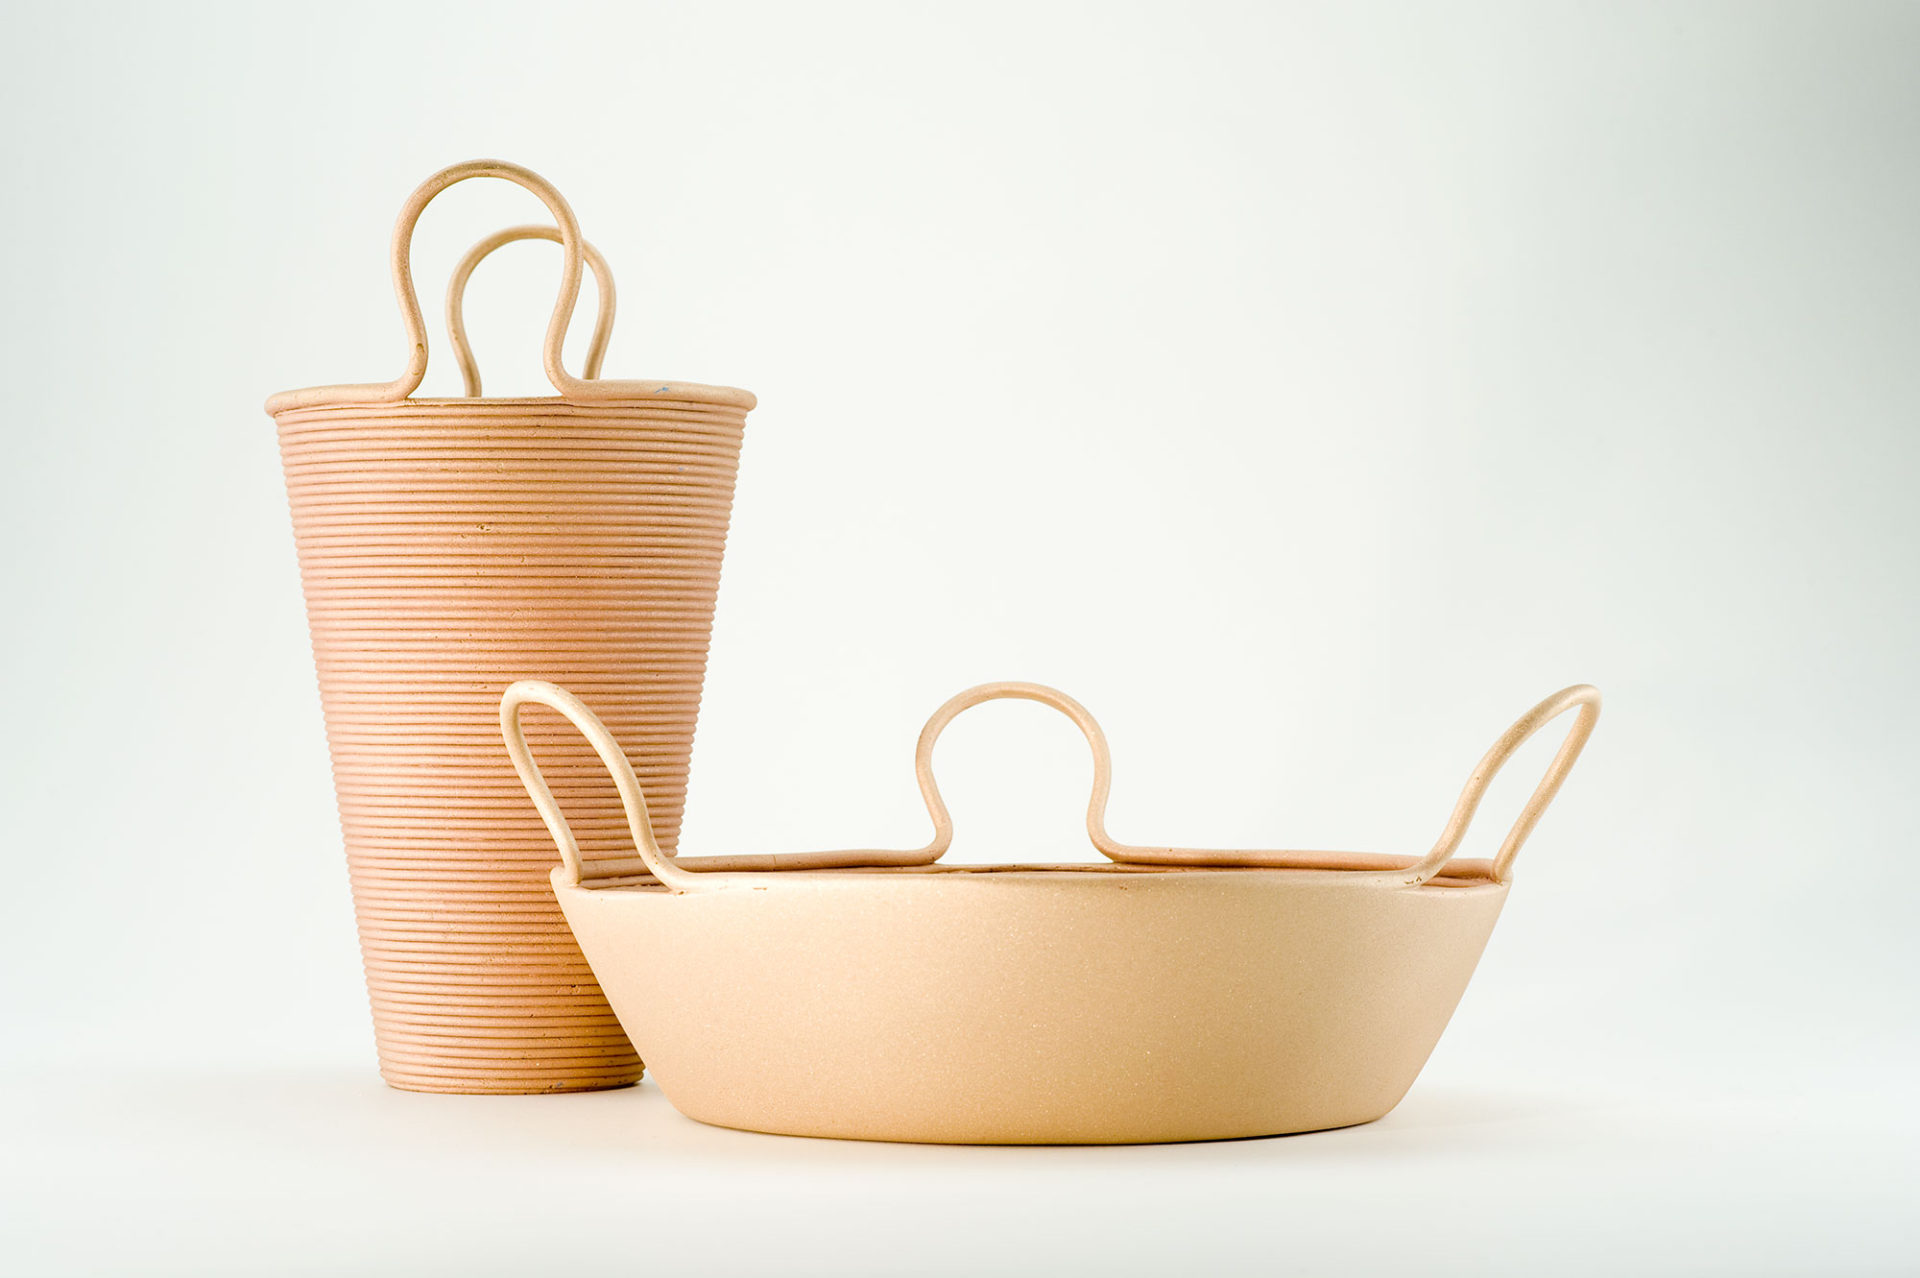 Tall straw-colored conical vase and wide conical basket, both straw-colored with handles.